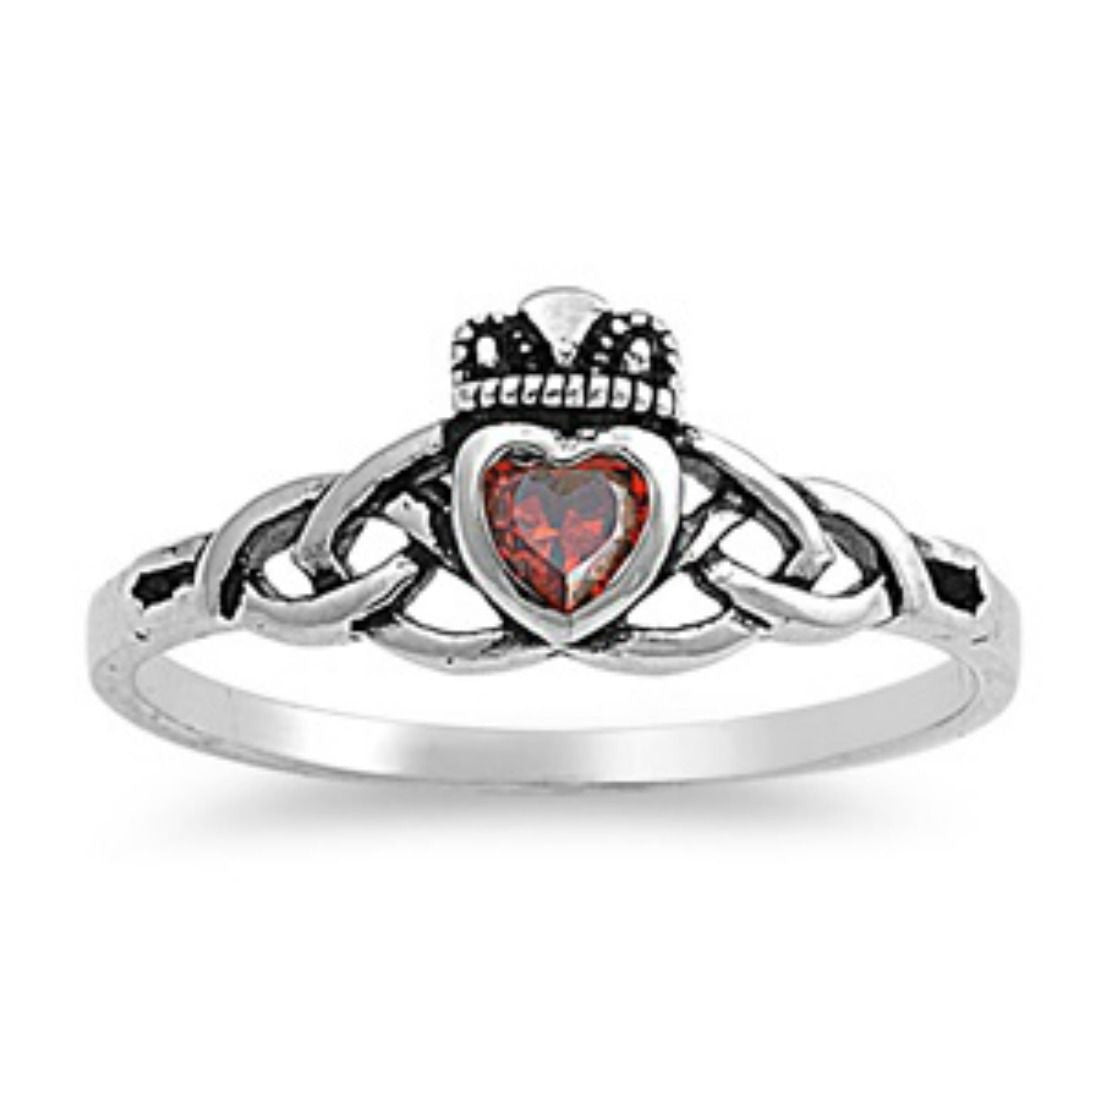 STERLING SILVER HEART IN HANDS CLADDAGH RING SIZE 6 WITH A RING BOX